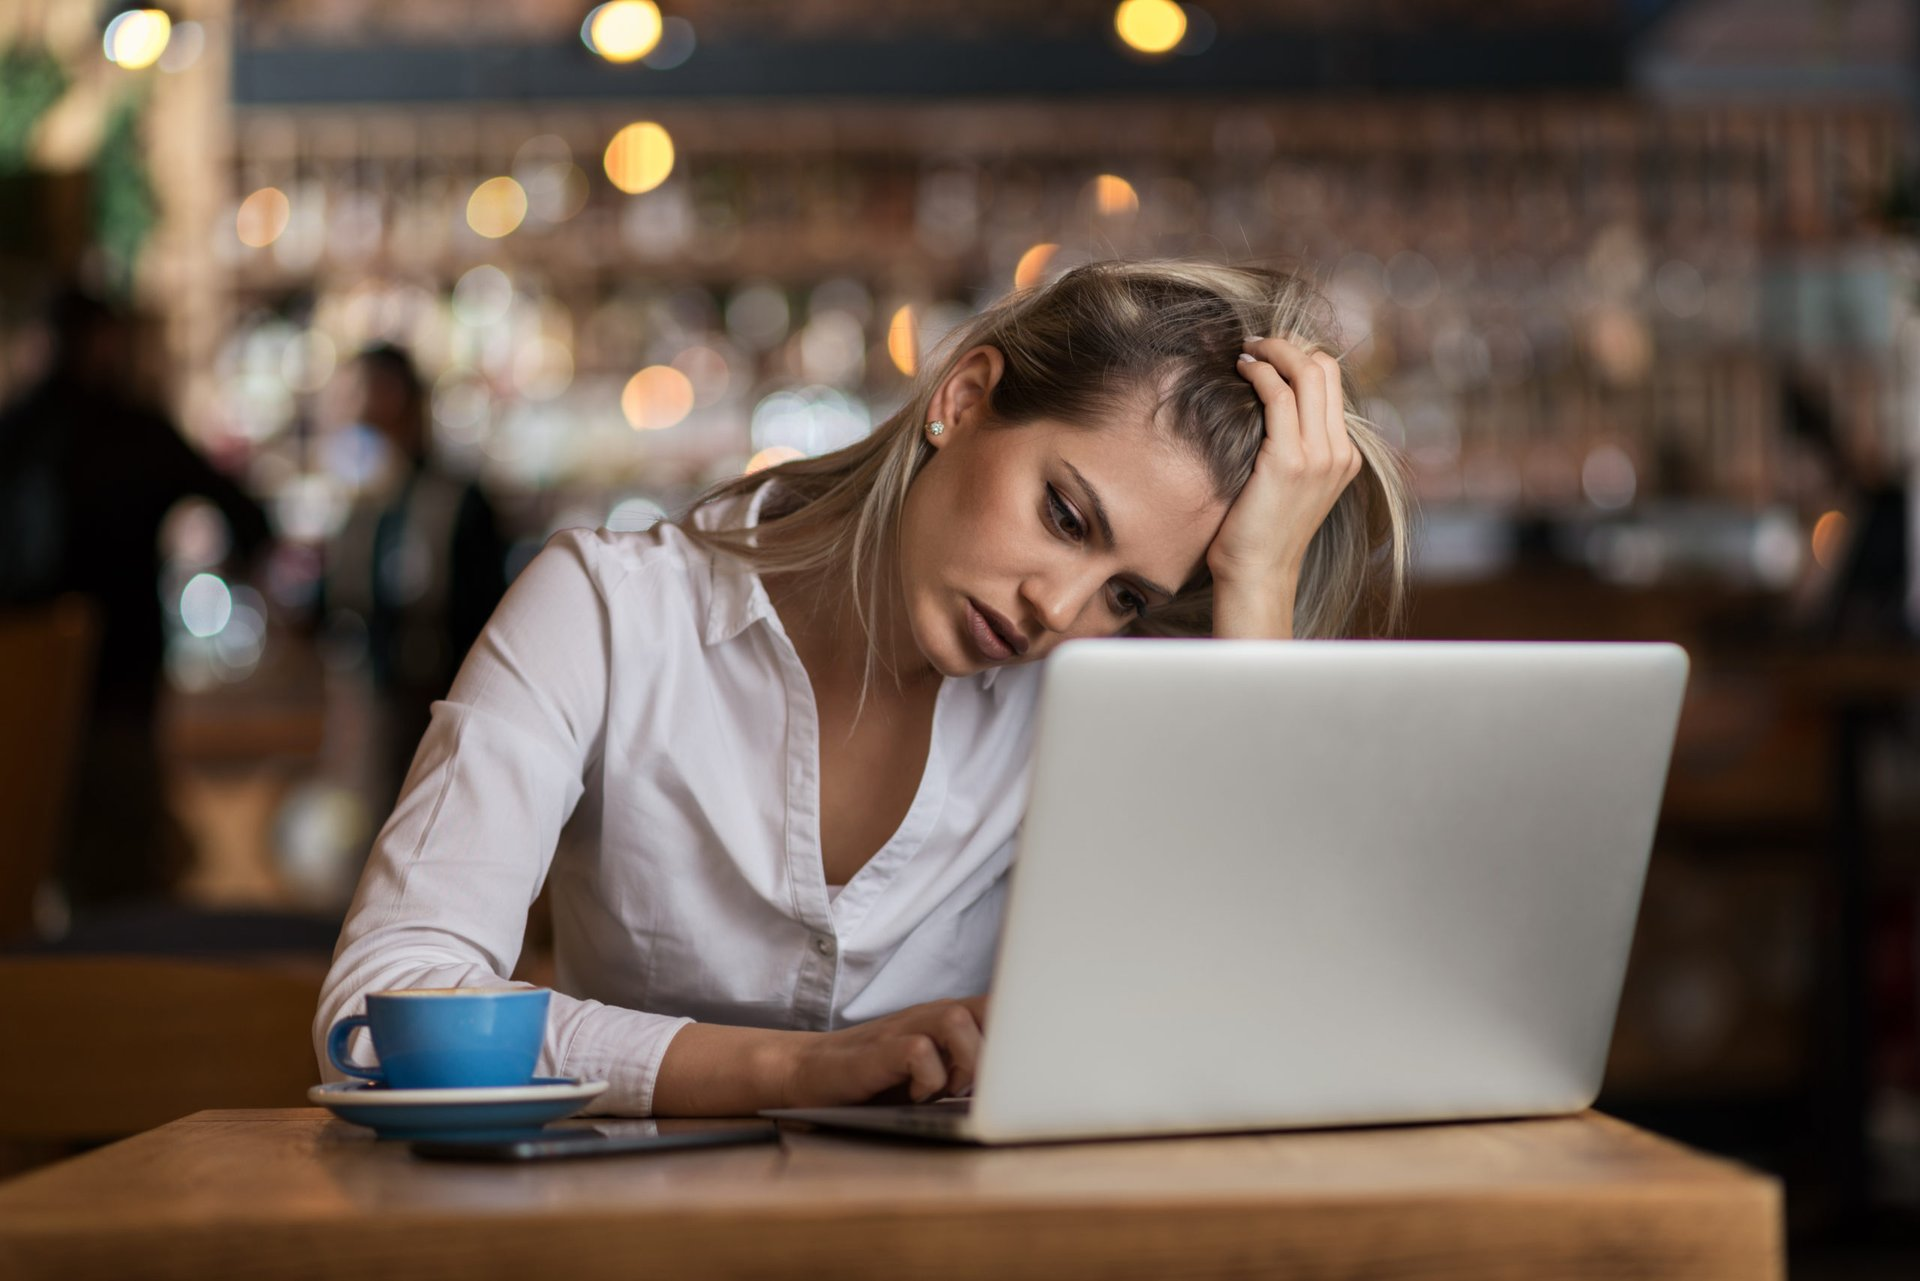 Stressed woman working on a laptop in a coffee shop